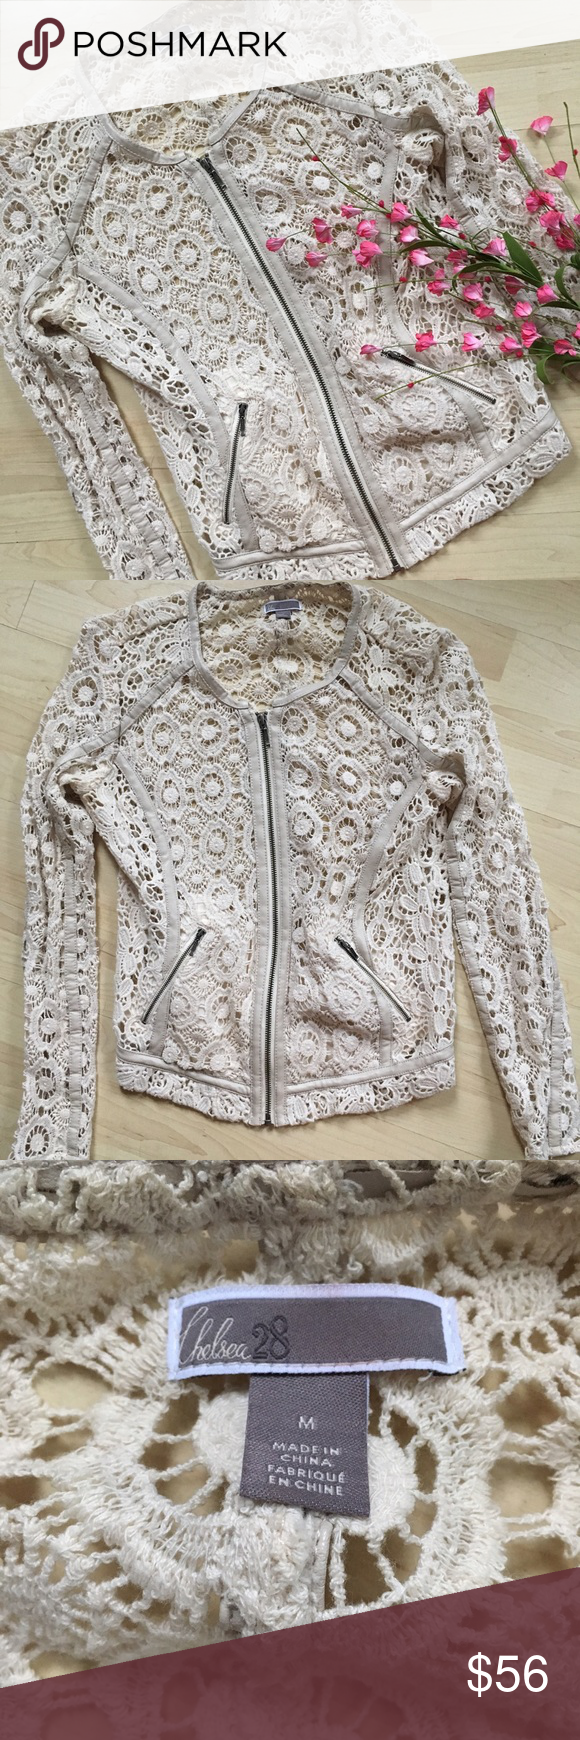 """Firm 💗Crochet and faux leather moto style jacket Gorgeous moto inspired crochet and faux leather jacket. ~23.5"""" long and 34"""" bust. In excellent condition. Runs slightly small, would fit a small as well. Chelsea28 Jackets & Coats"""